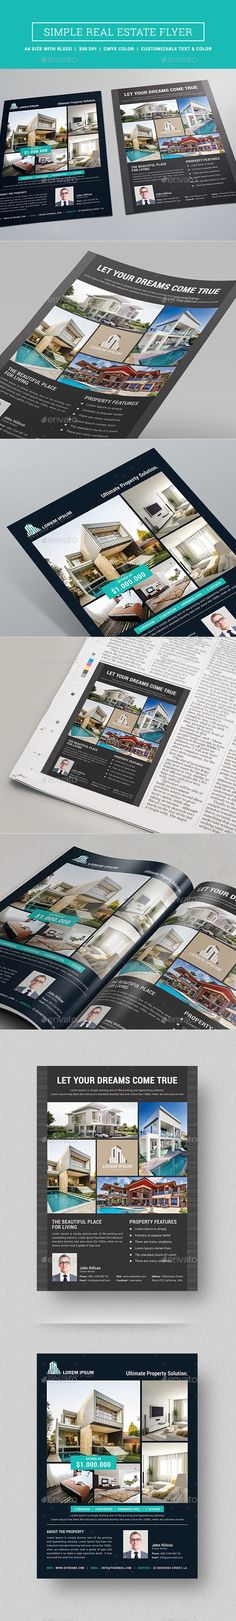 Real Estate Flyer Template PSD. Download here: http://graphicriver.net/item/real-estate-flyer/15934829?ref=ksioks